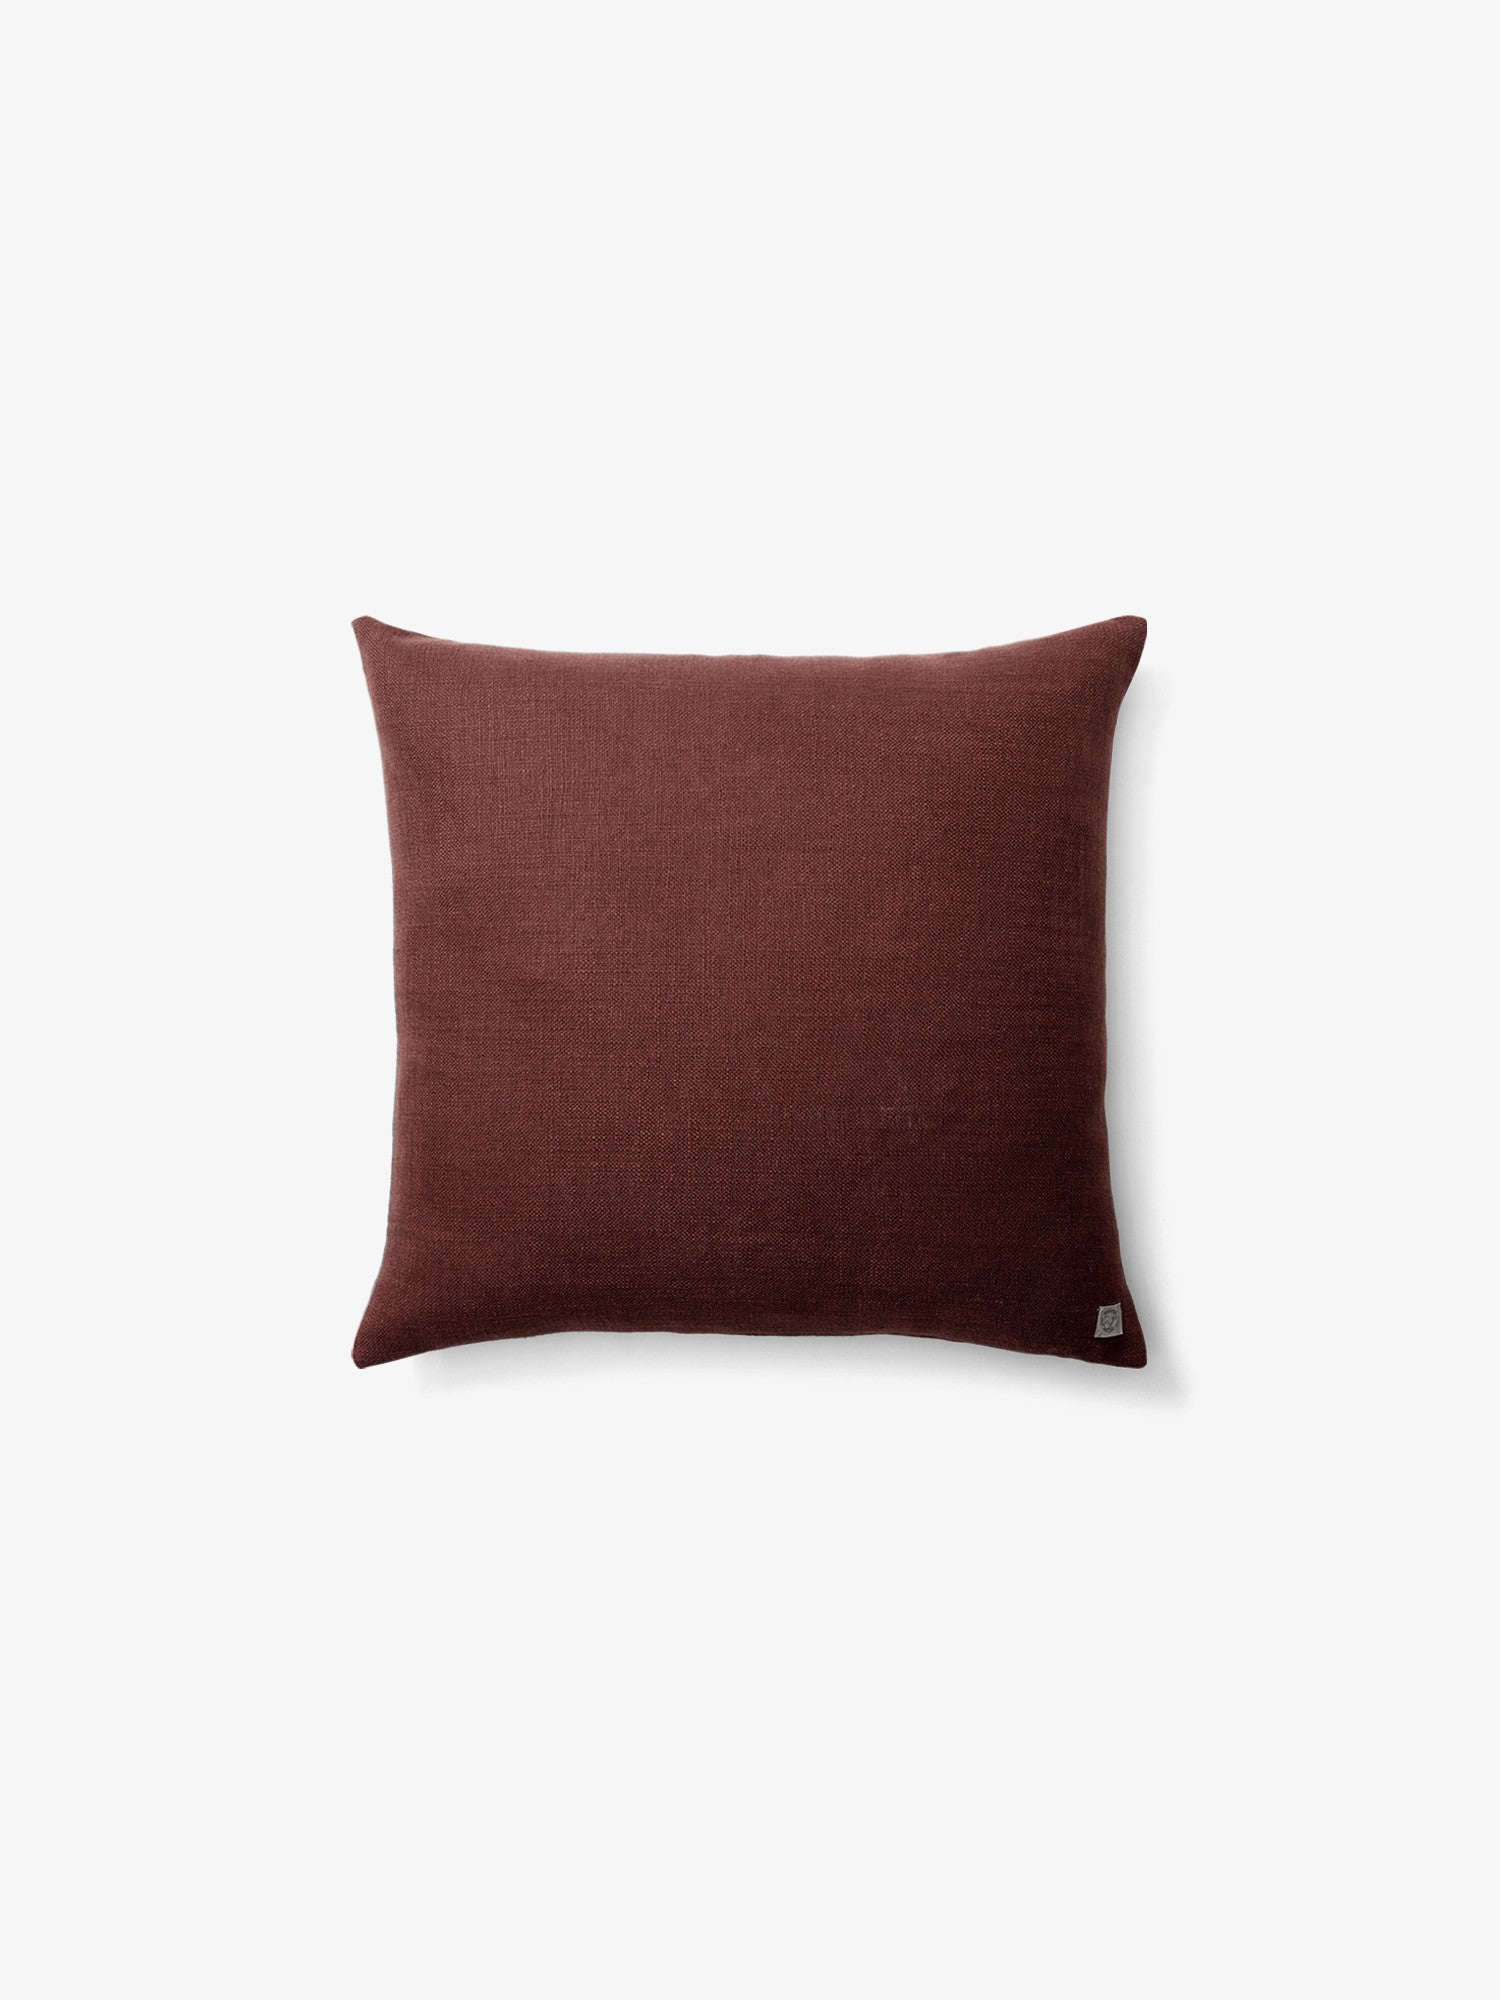 Collect Pillow 65x65cm - Heavy Linen